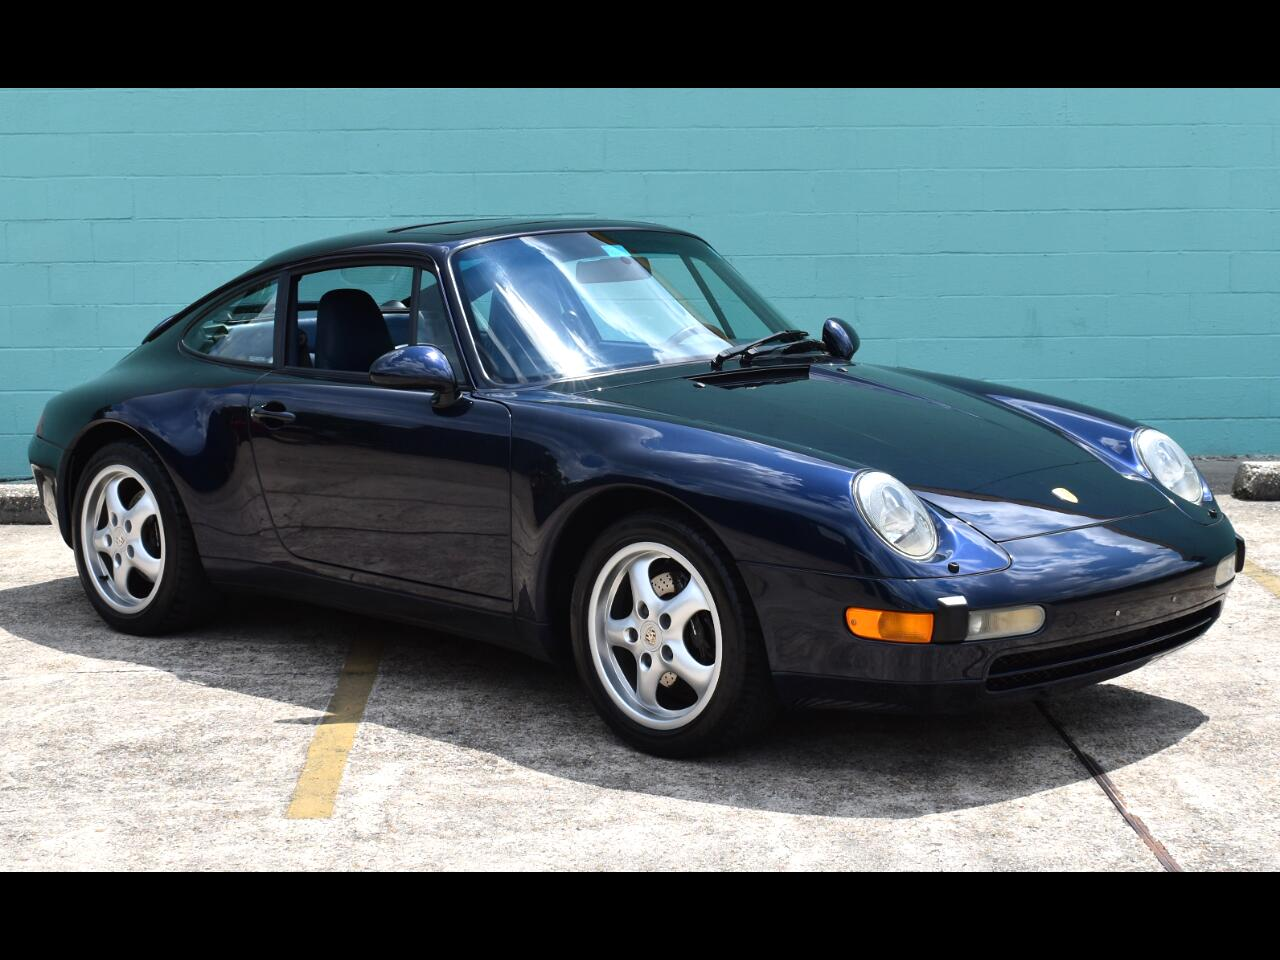 1995 Porsche 911 Carrera 2dr Coupe Carrera 6-Spd Manual